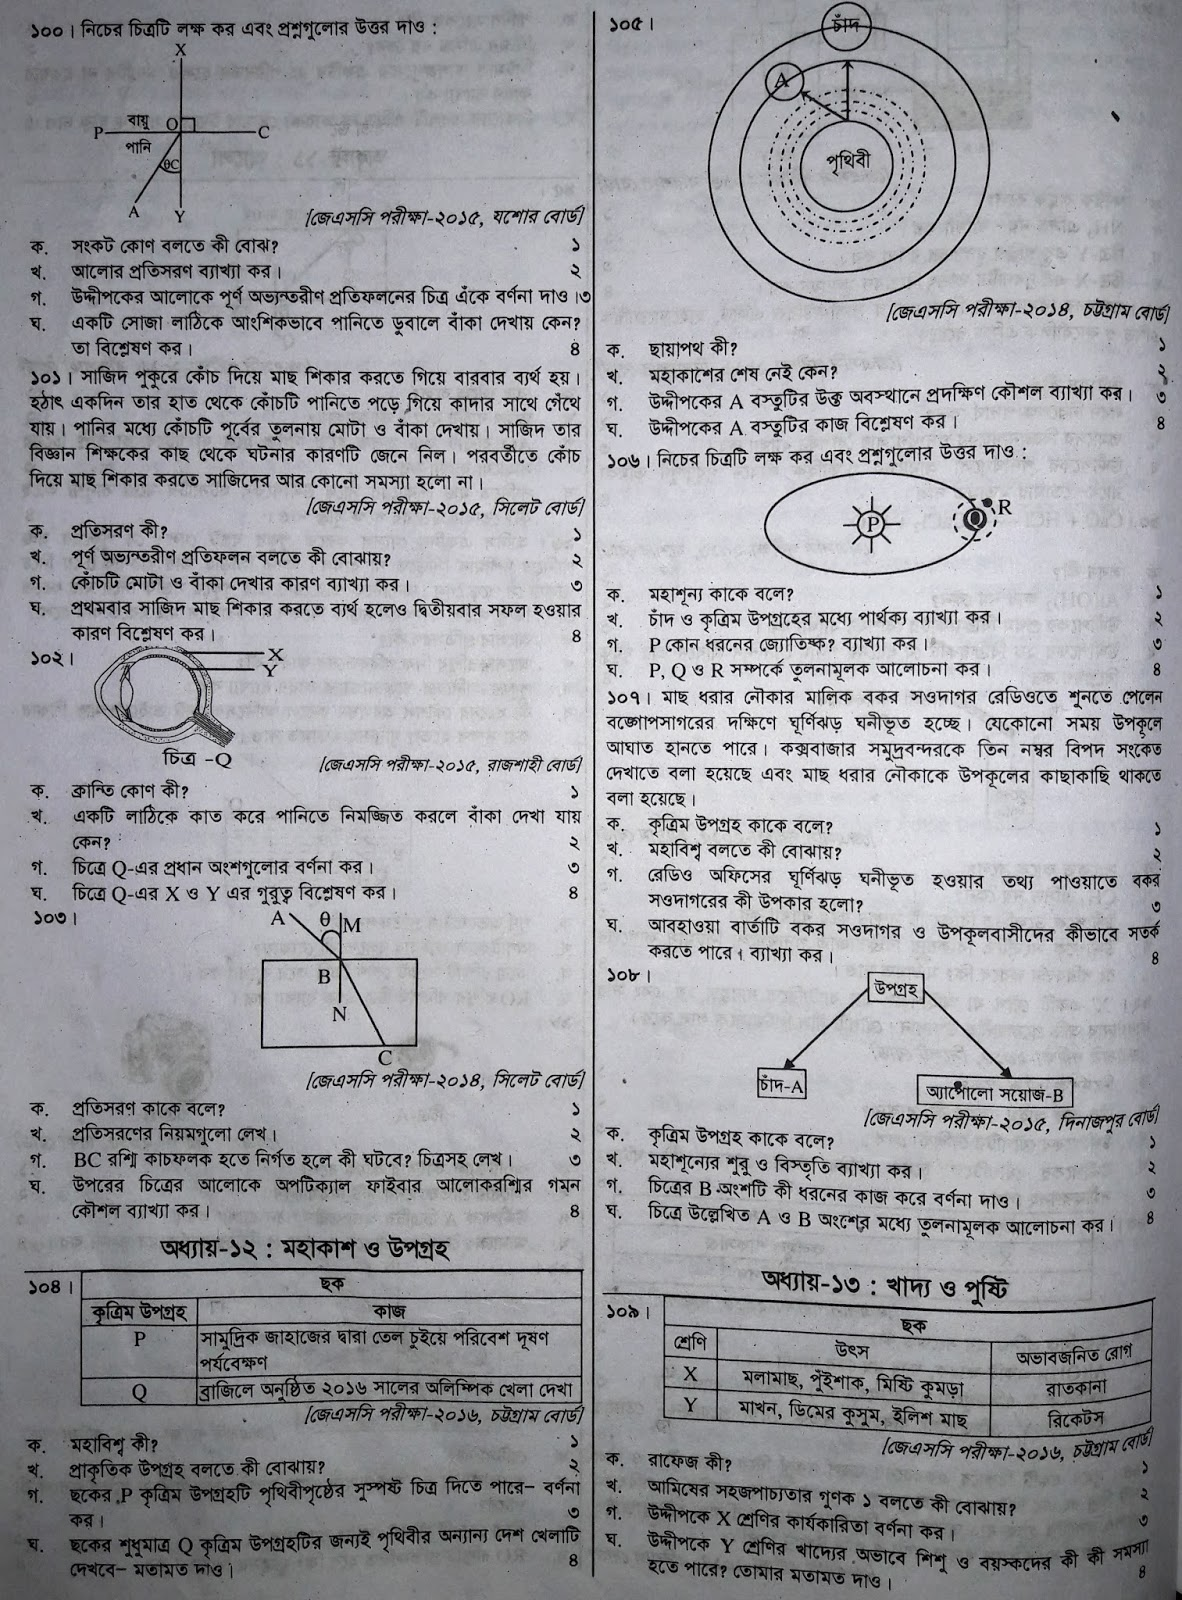 jsc science suggestion, exam question paper, model question, mcq question, question pattern, preparation for dhaka board, all boards